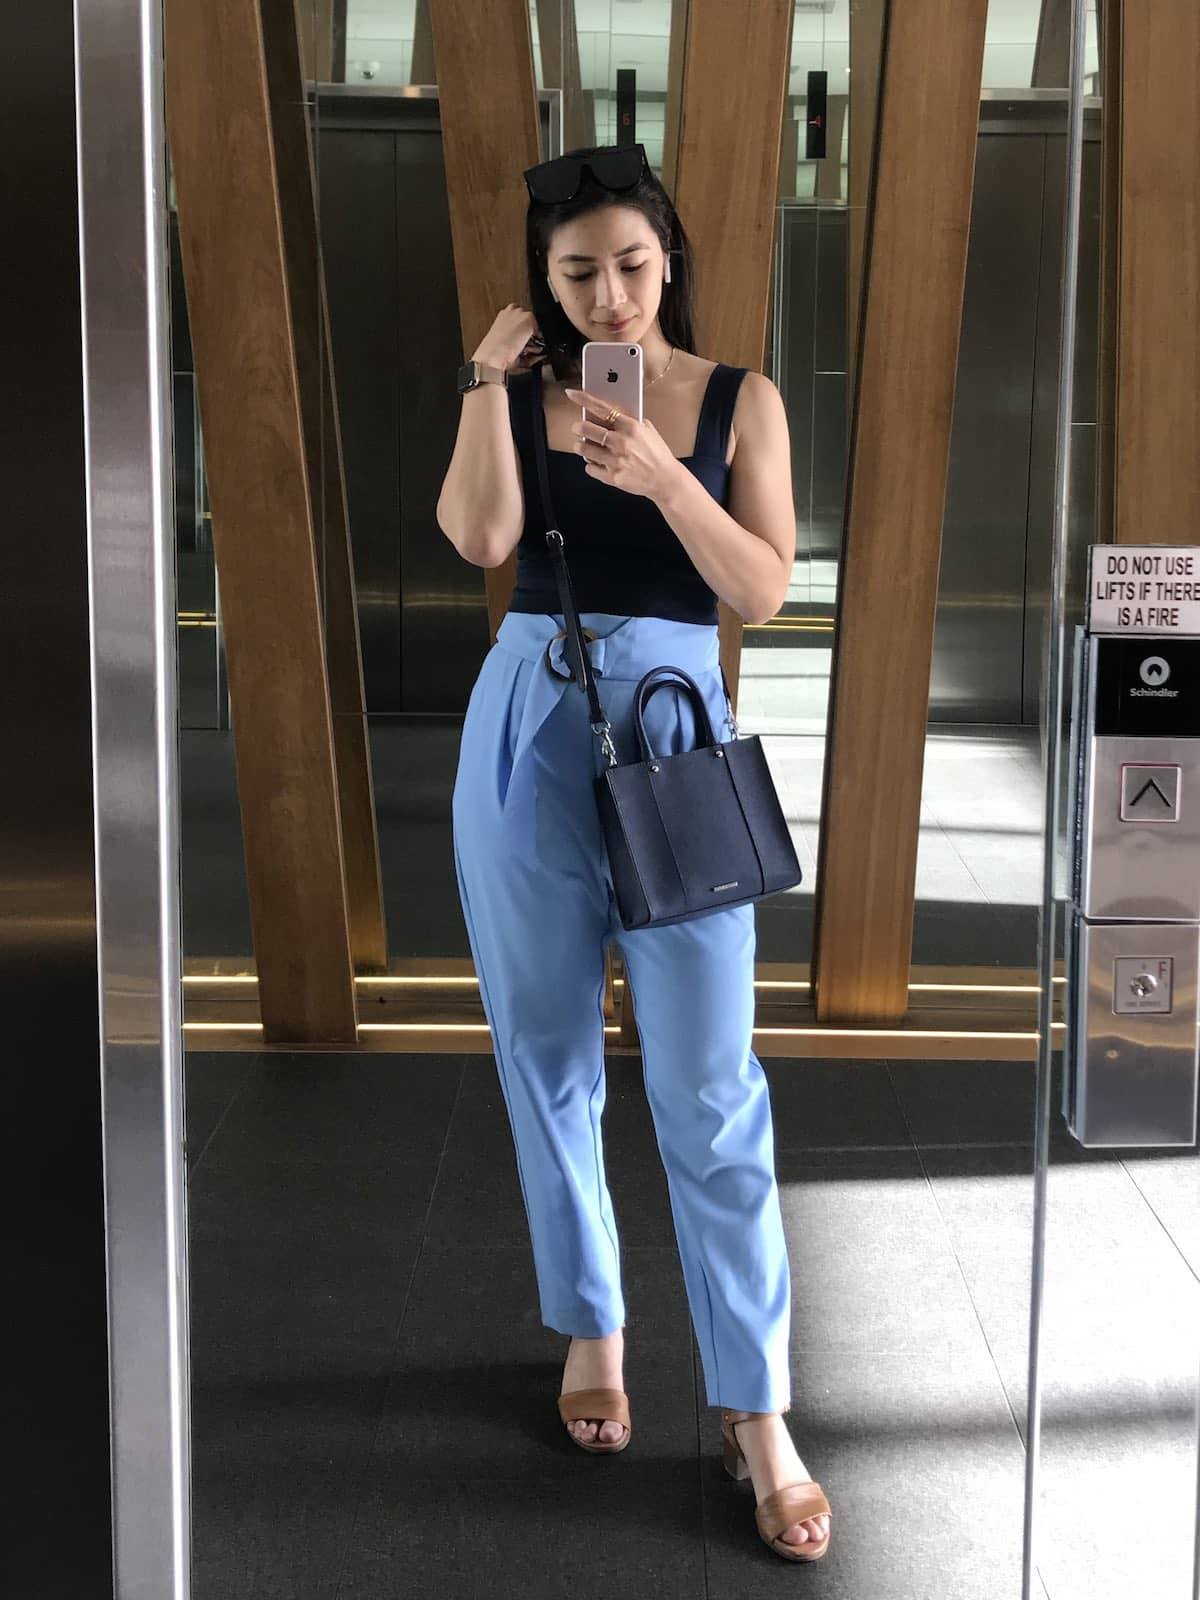 A woman taking a selfie in a mirror. She's wearing a navy sleeveless top with sky blue tapered pants.